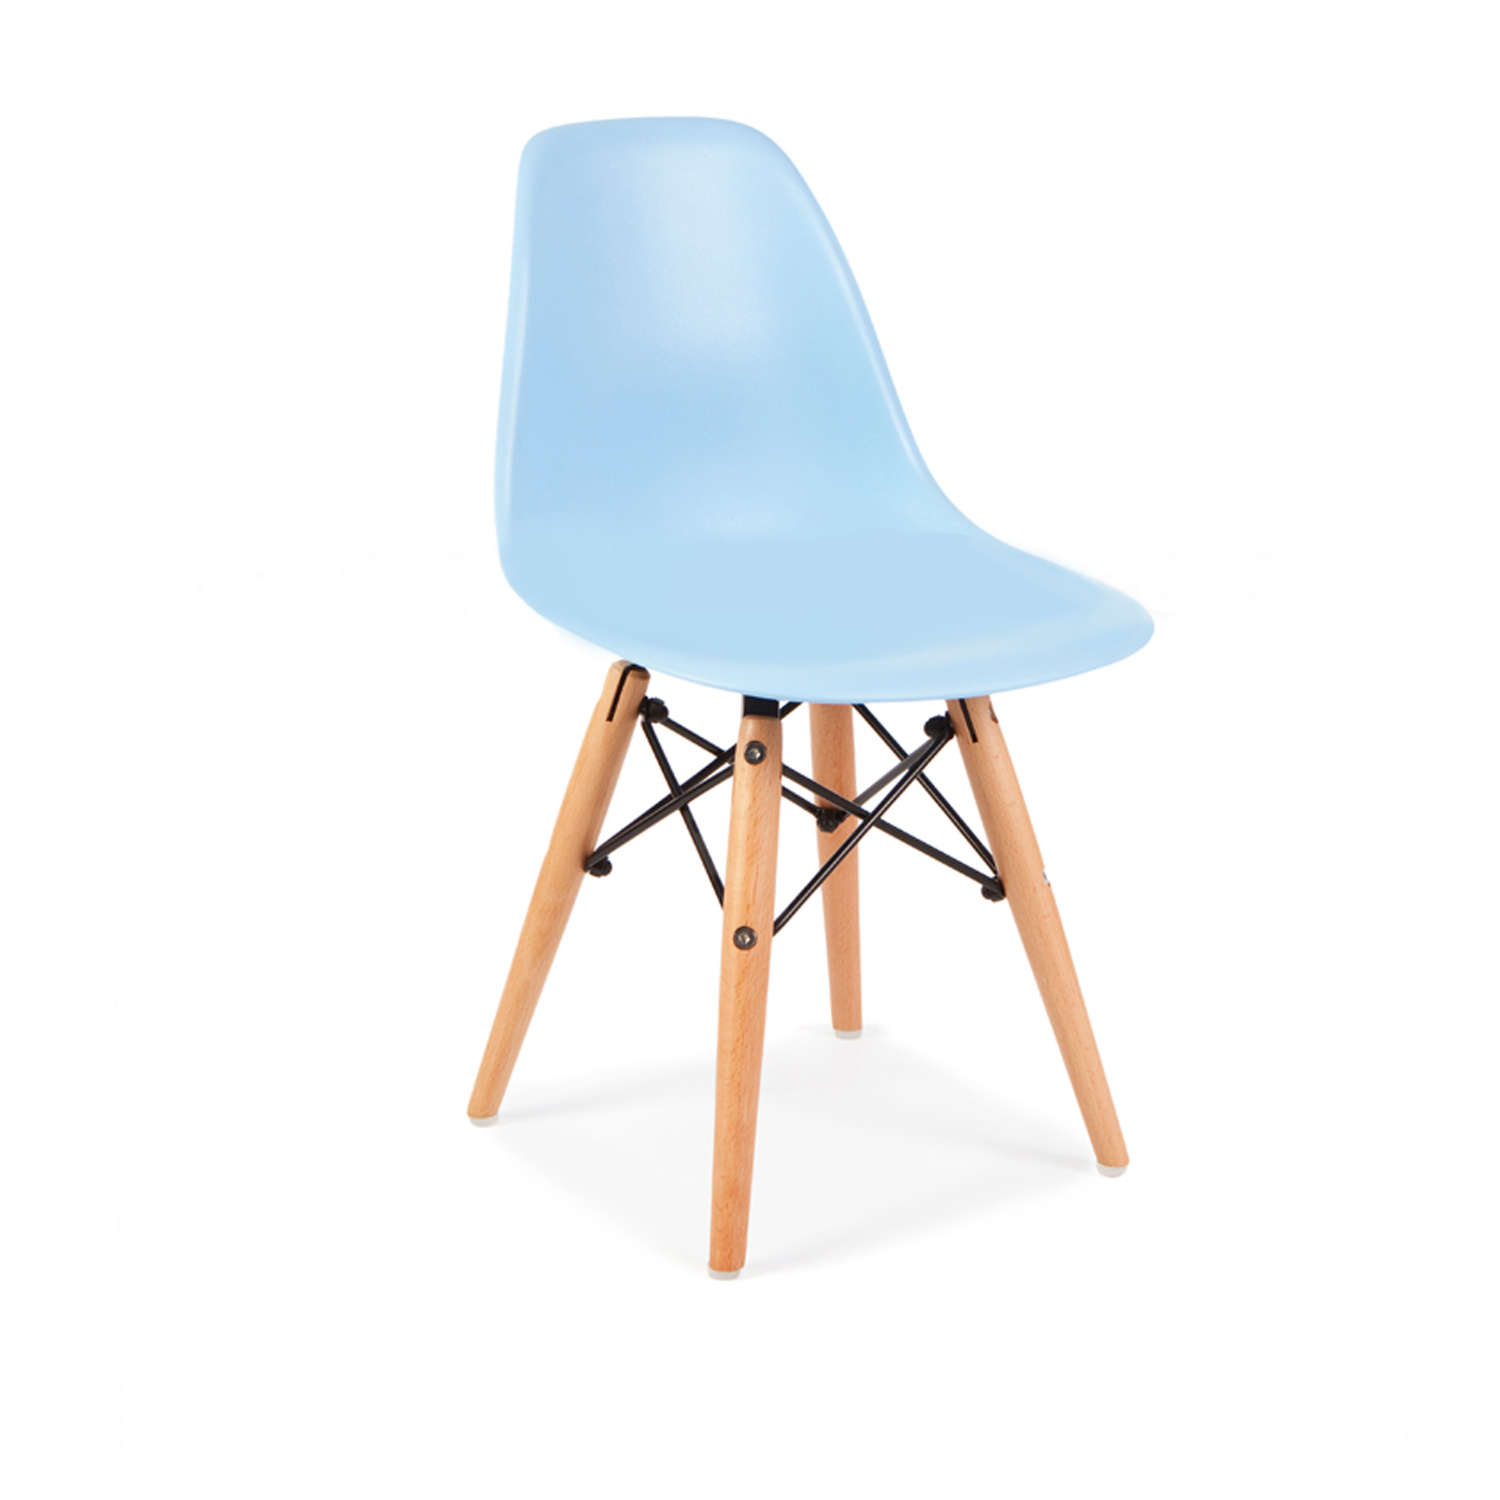 Replica eames eiffel kids chair clever little monkey for Eames fake chair